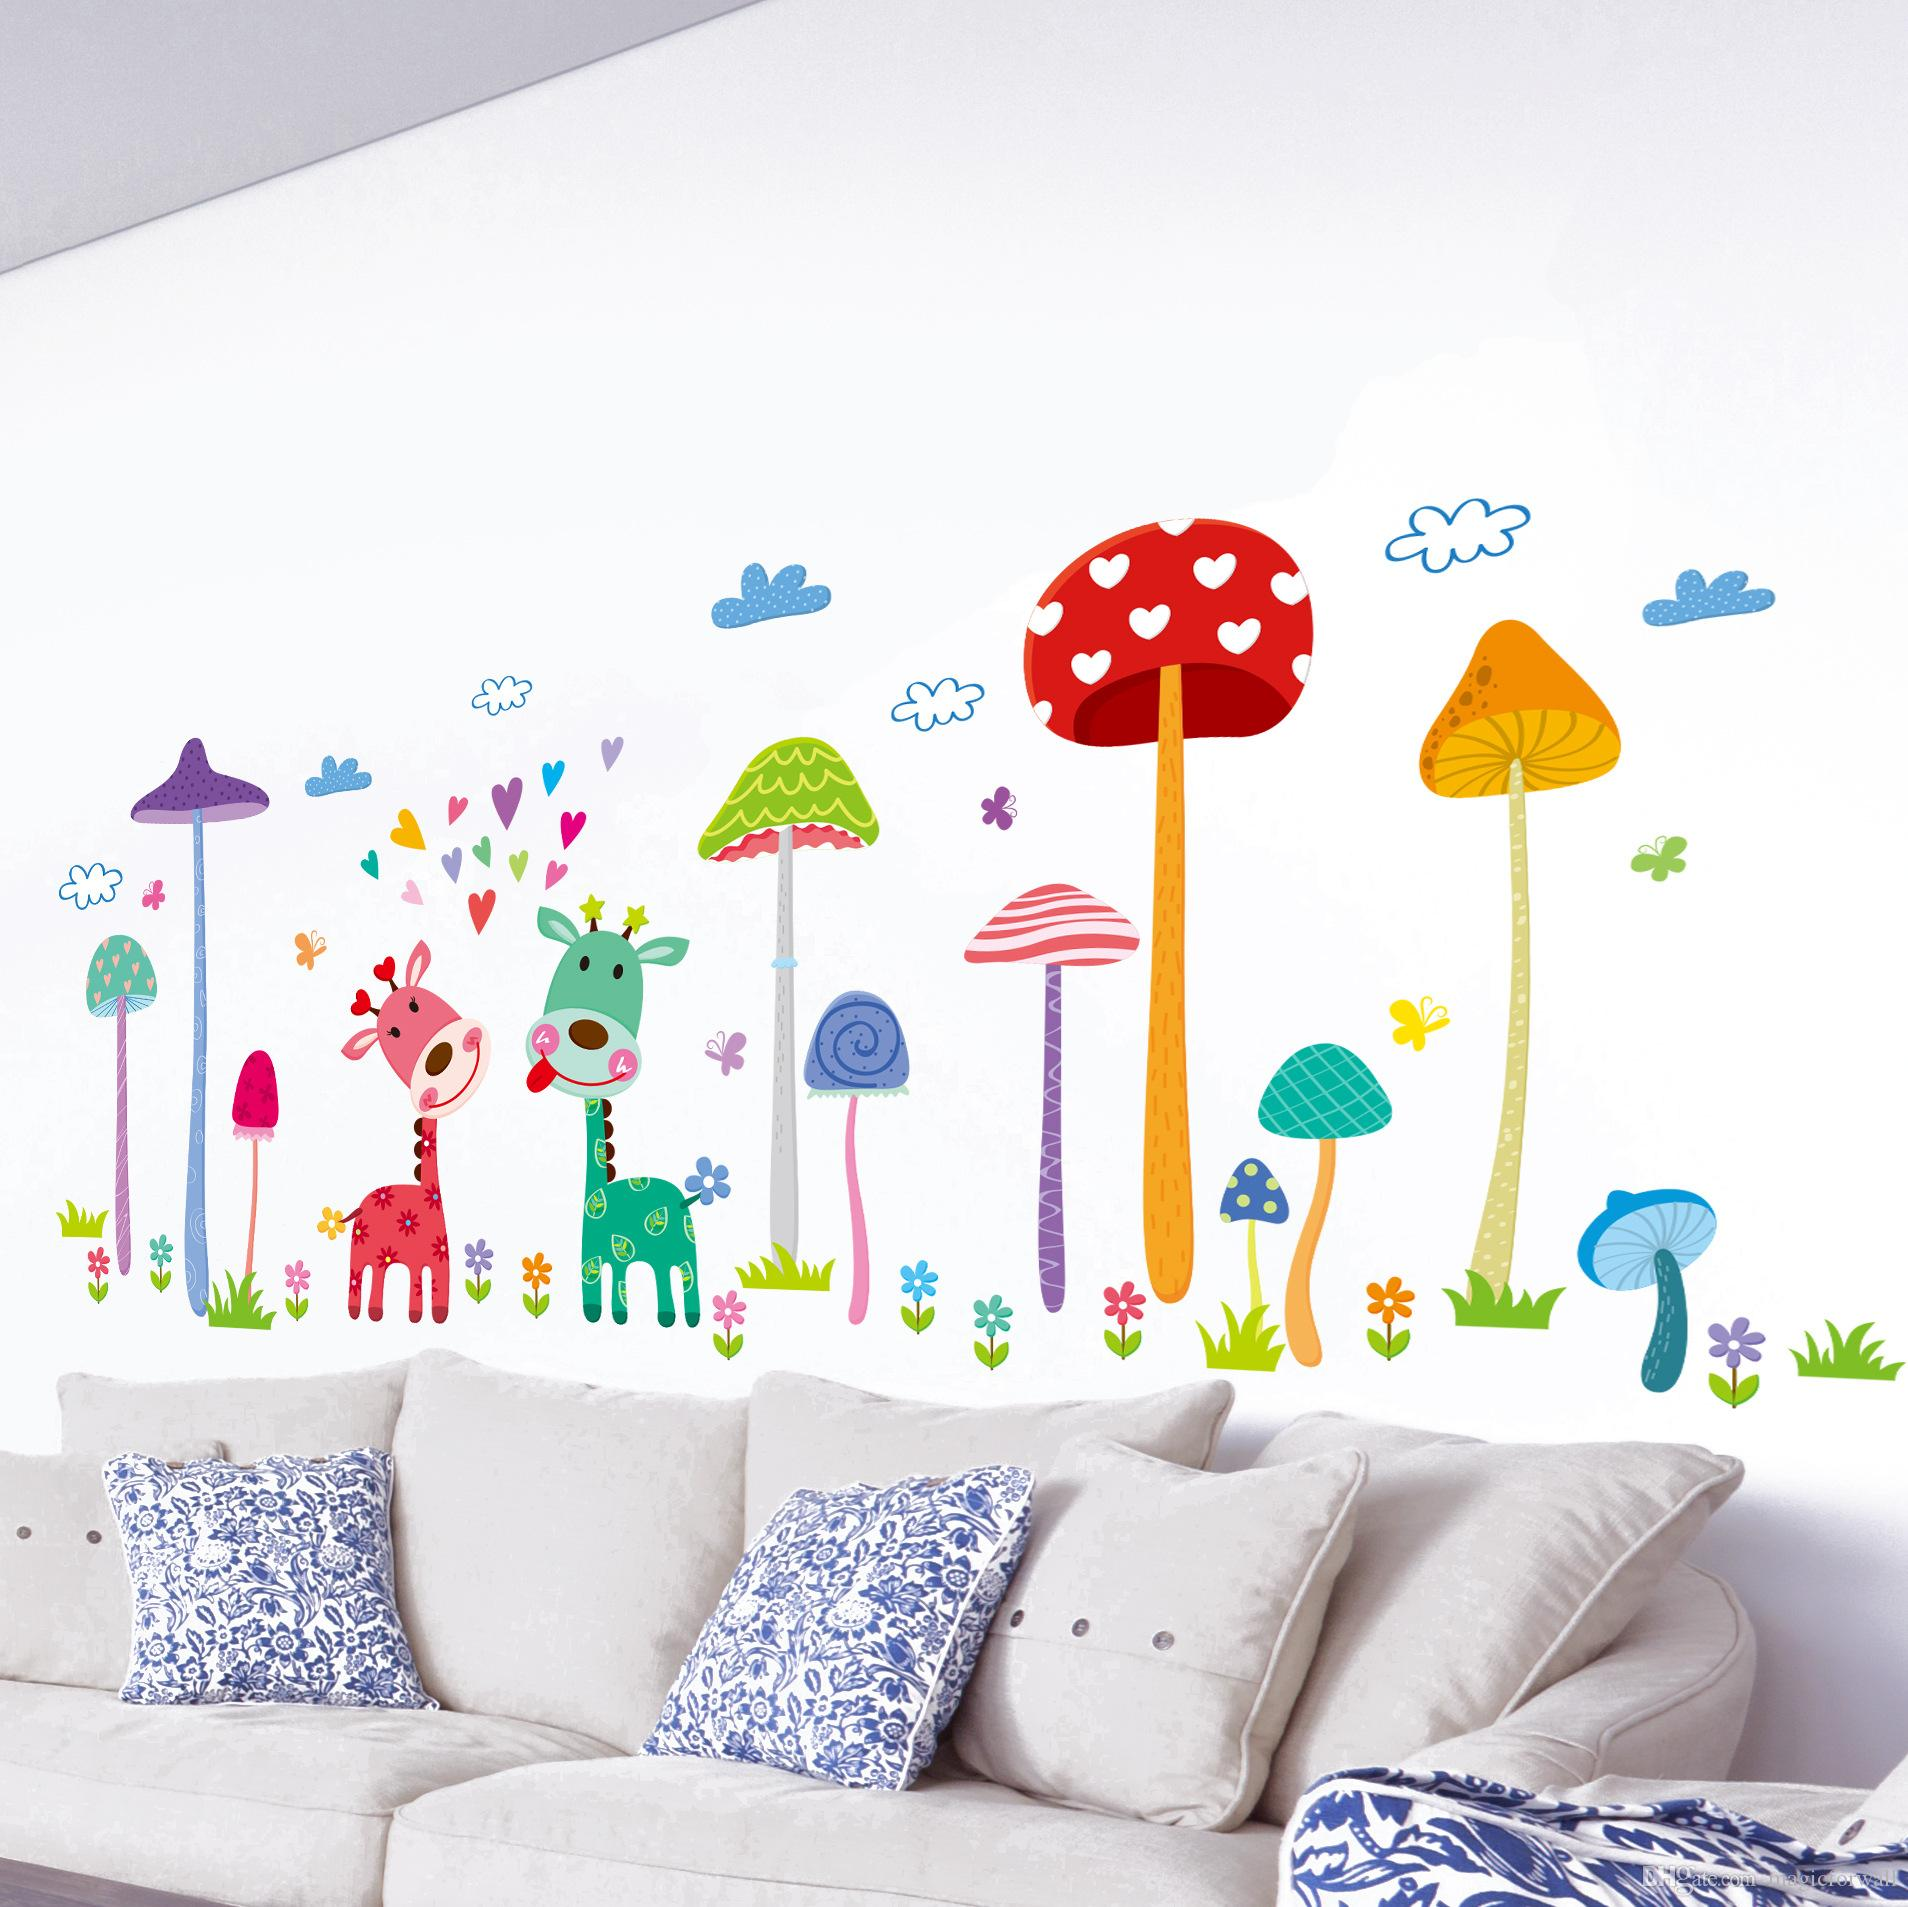 Wall Art Murals Decals Stickers Images · Great Wall Art Murals Decals  Stickers Amazing Ideas Part 14